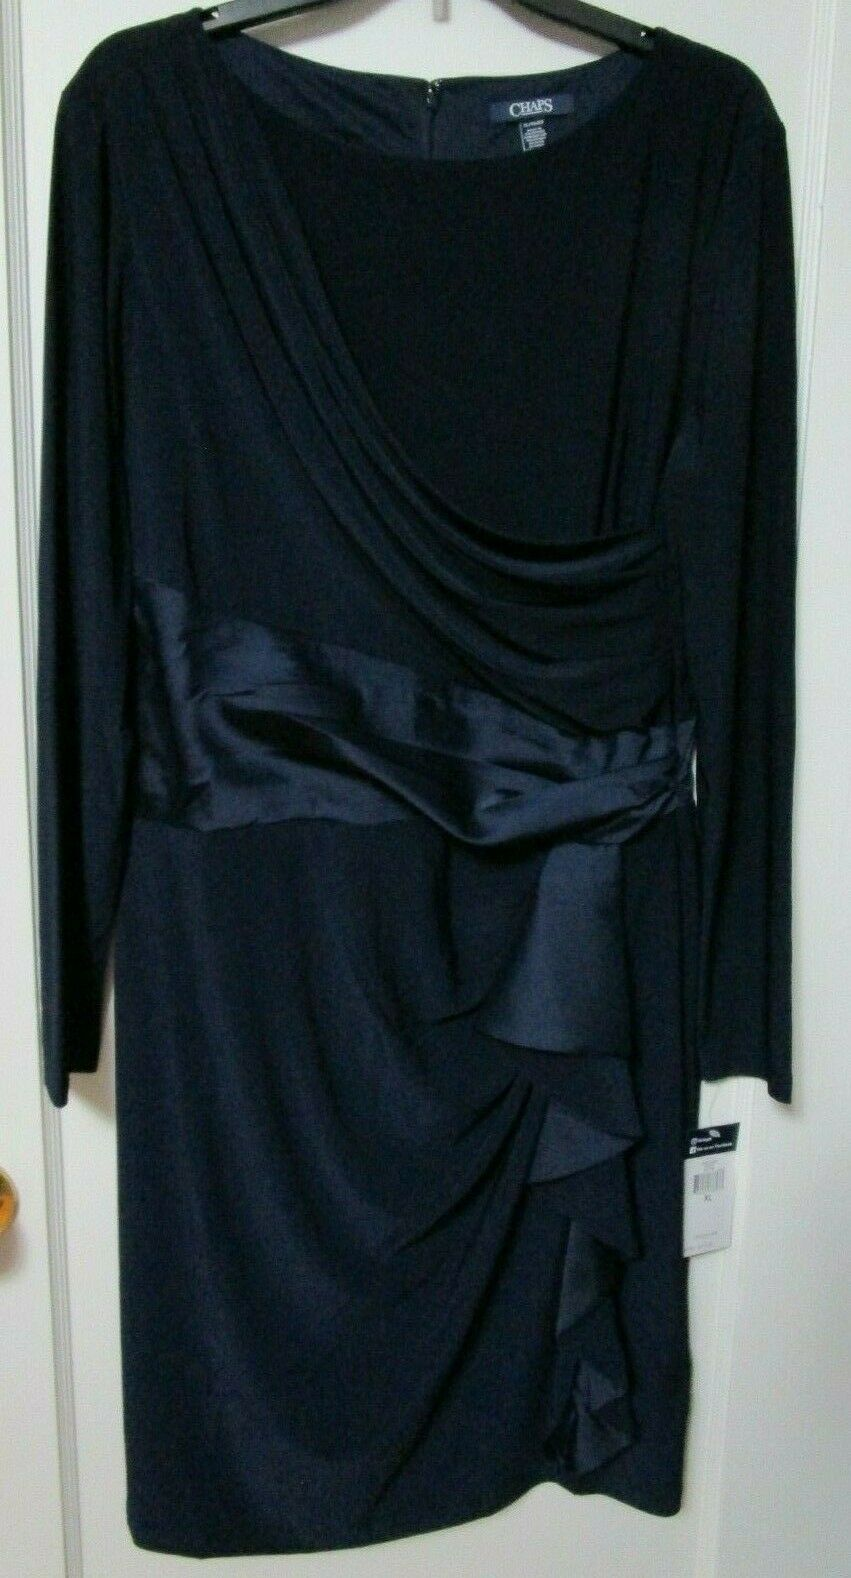 NWT Women's CHAPS Navy bluee Satin Sash Ruffle Front Dress Size XL - MSRP  110